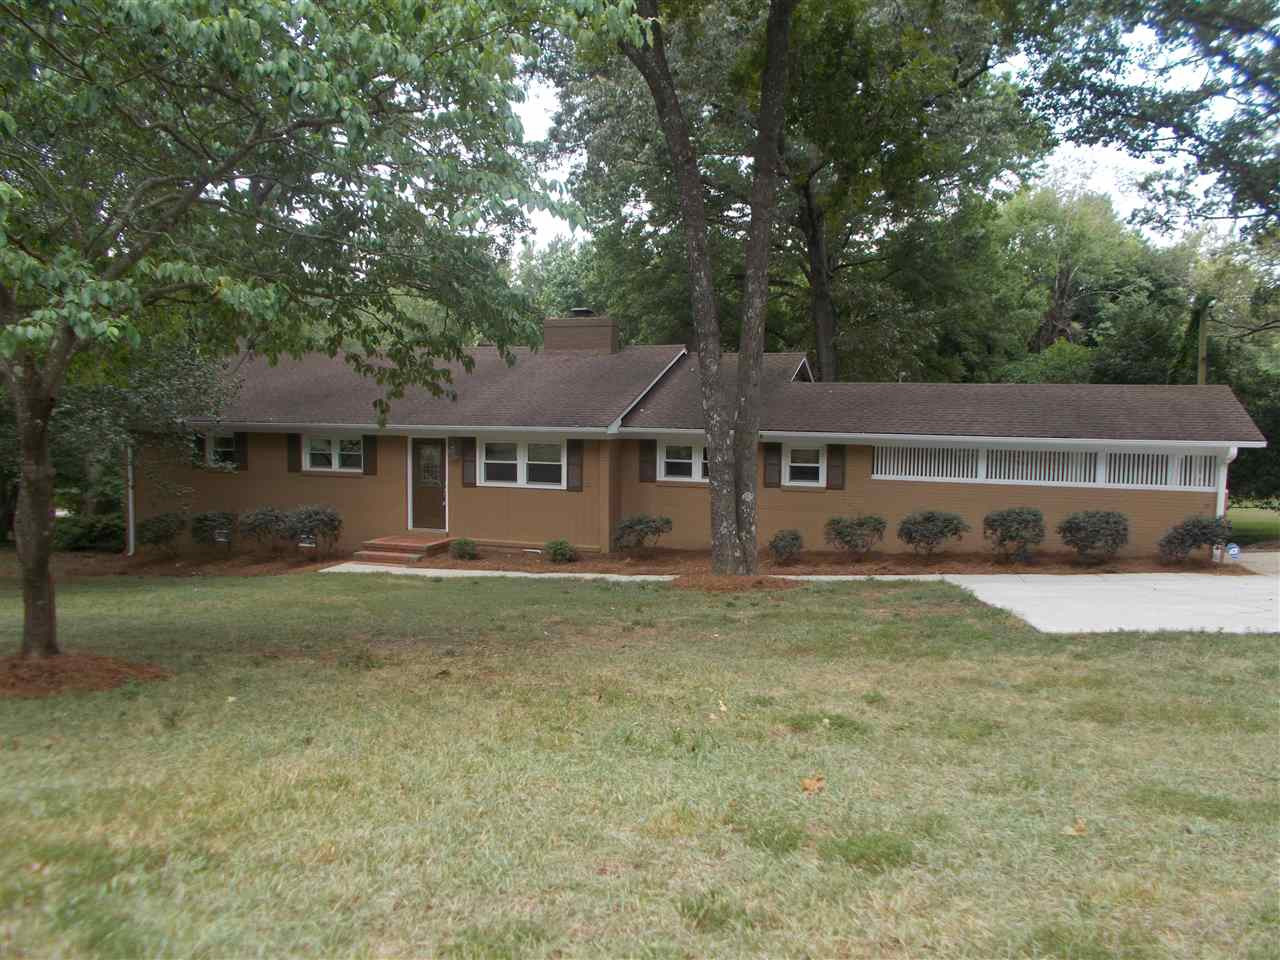 hardwood floor refinishing rock hill sc of homes for sale in rock hill sc within 561 country club drive rock hill sc 29730